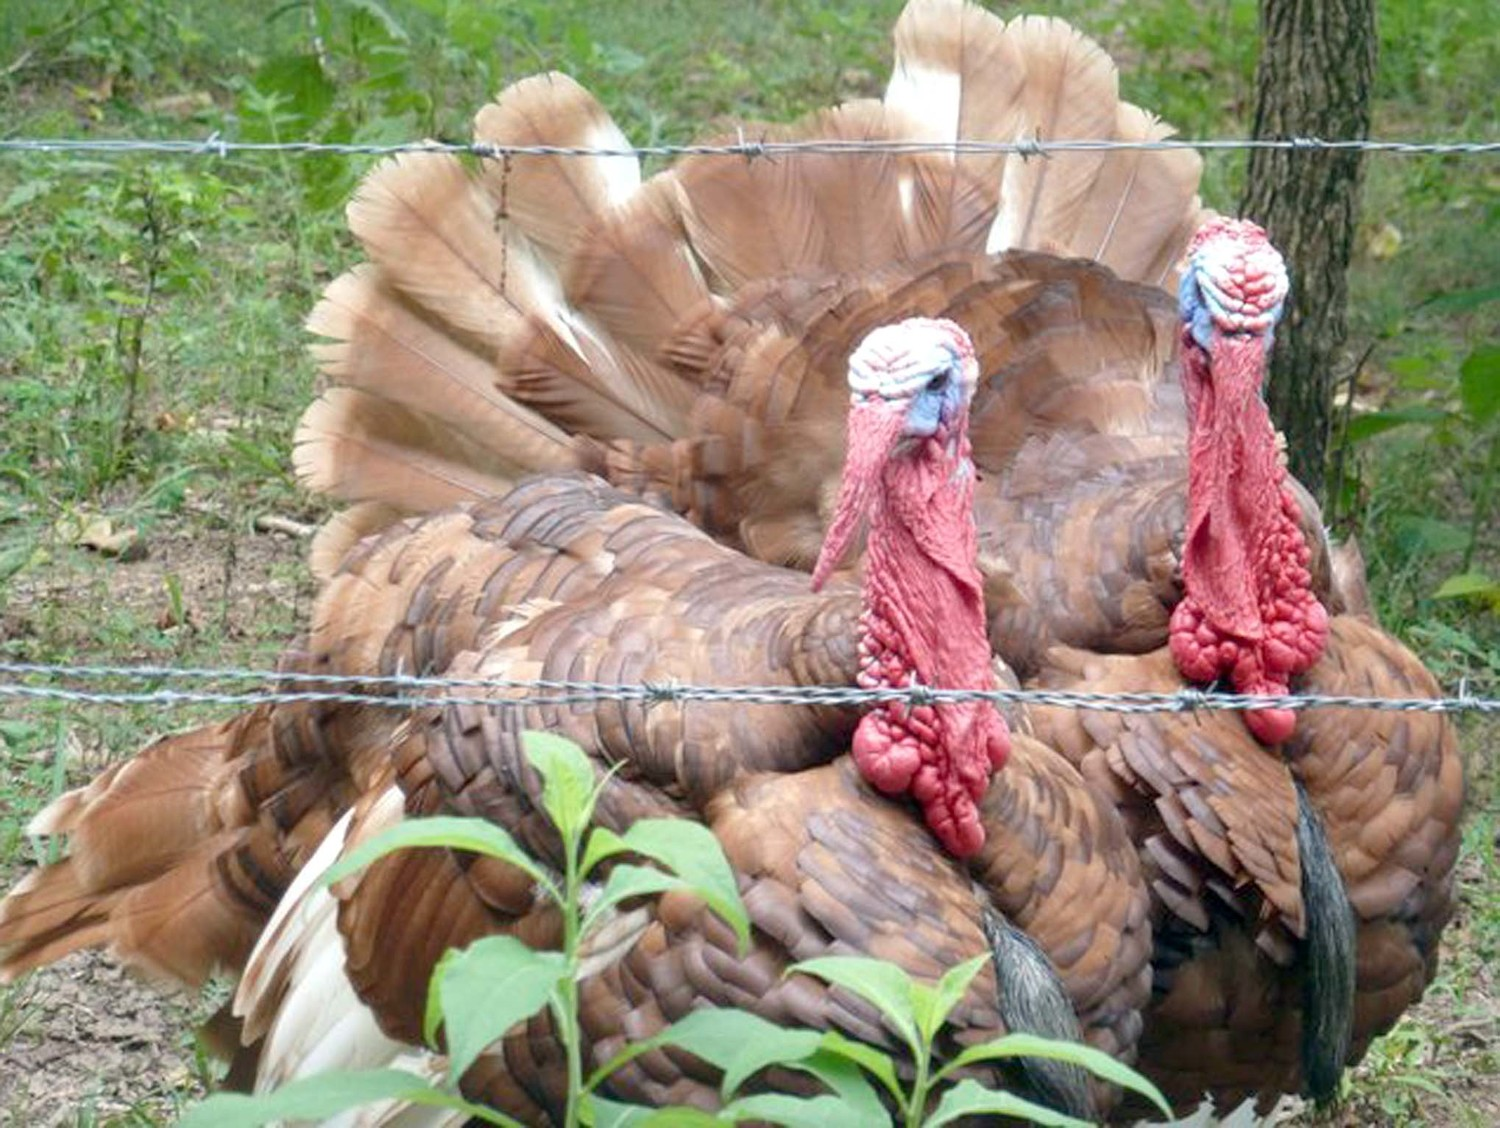 TWO TURKEYS observed at Fall Creek Falls don't seem to be in danger of ending up on a Thanksgiving table. Photo courtesy of Jennifer Hardison.